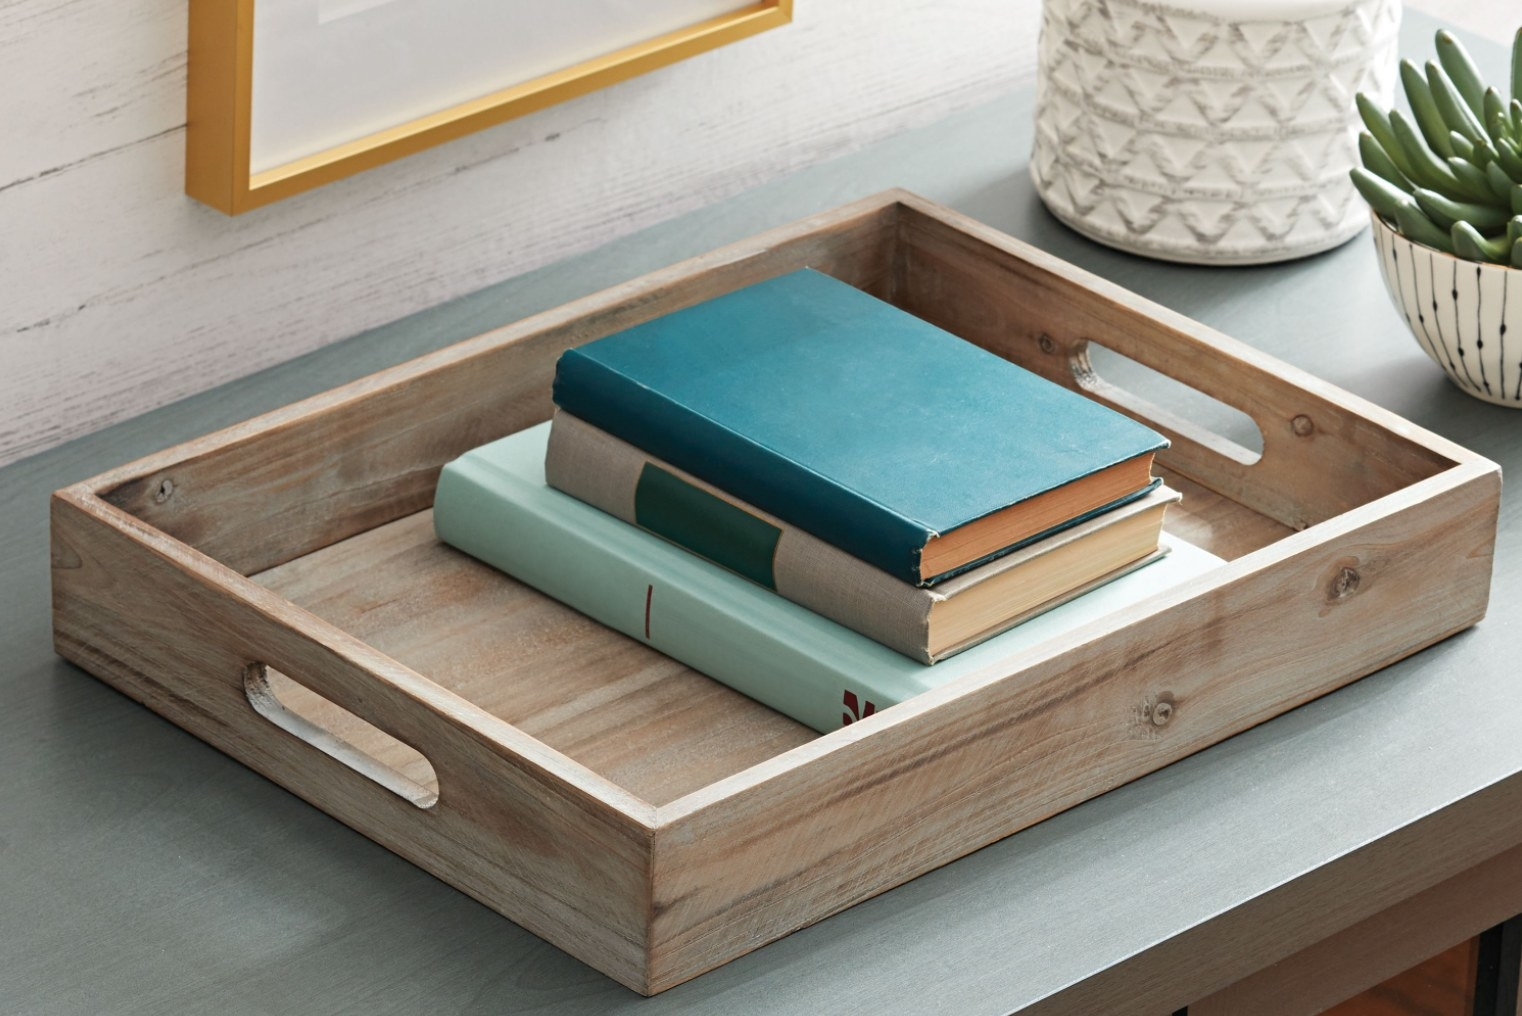 The tray holding books